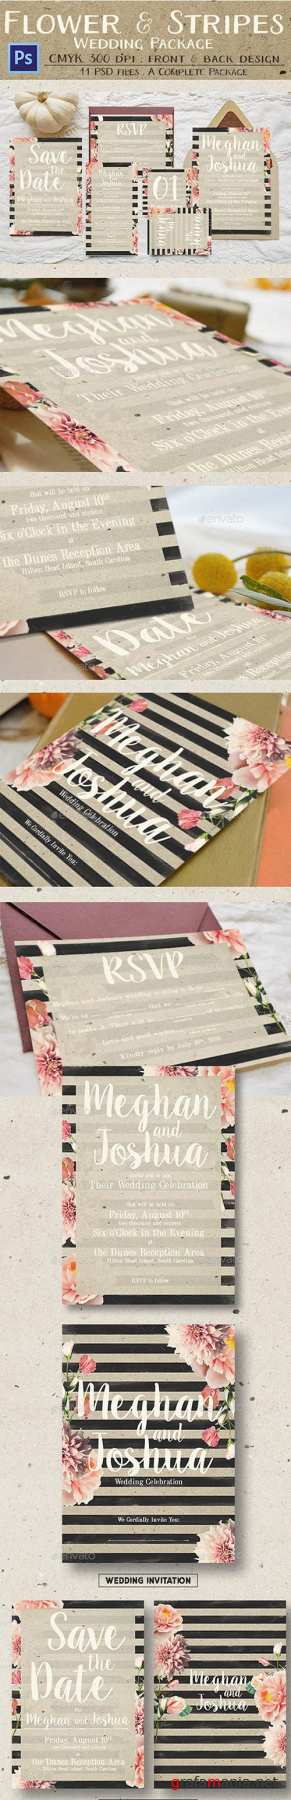 GR - Rustic Flower & Stripes Wedding Package 13641213